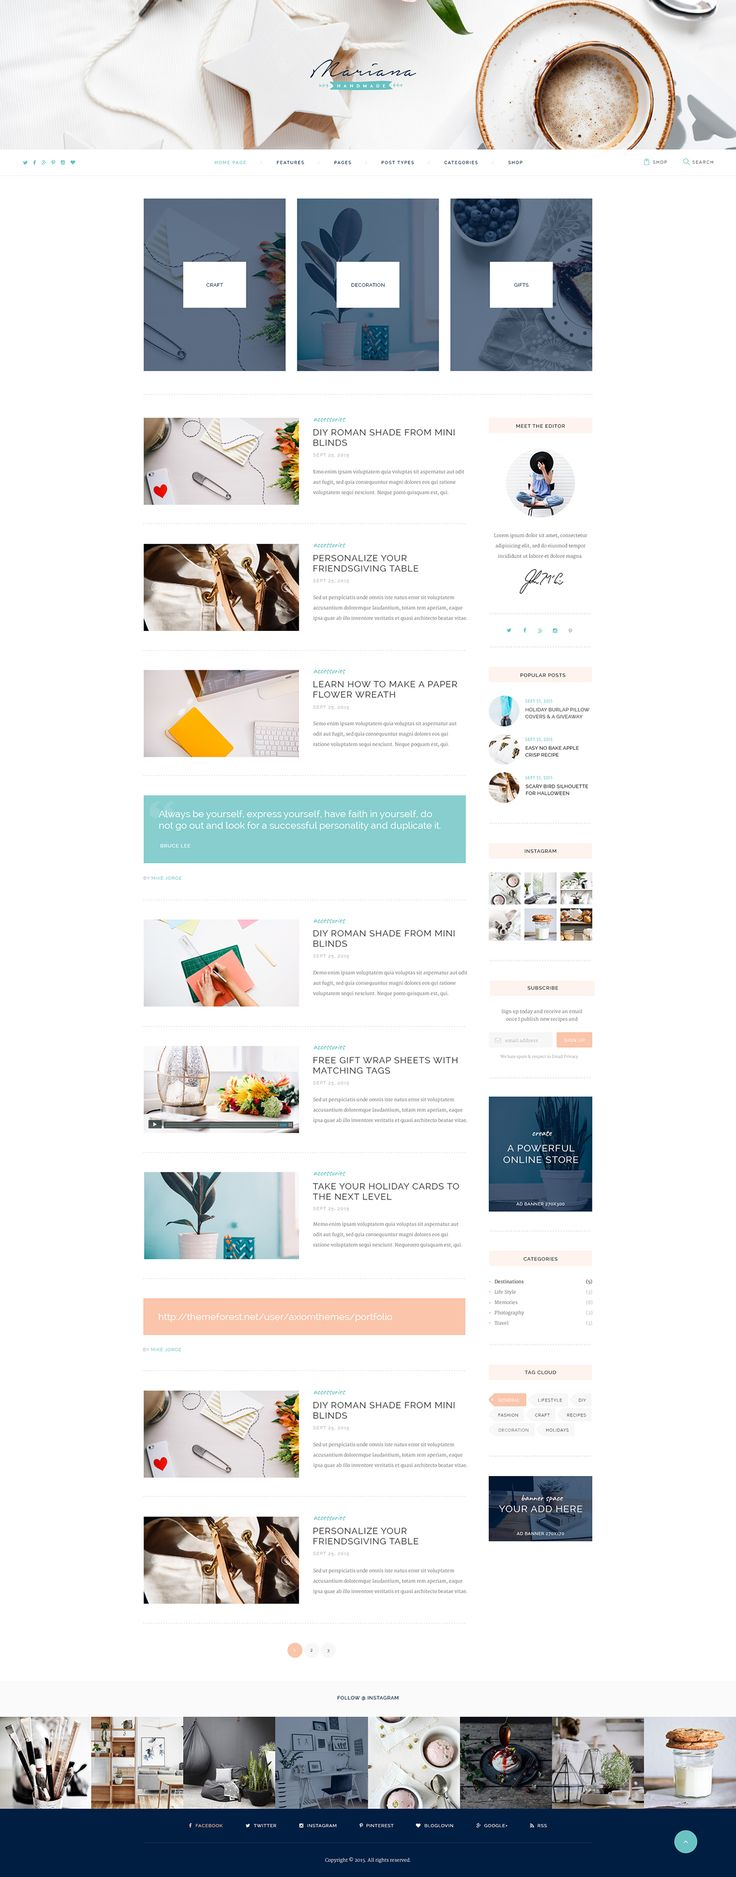 ThemeREX team is super happy to introduce you the new WordPress theme. With Mariana, bloggers finally have all tools they might need, at hand!